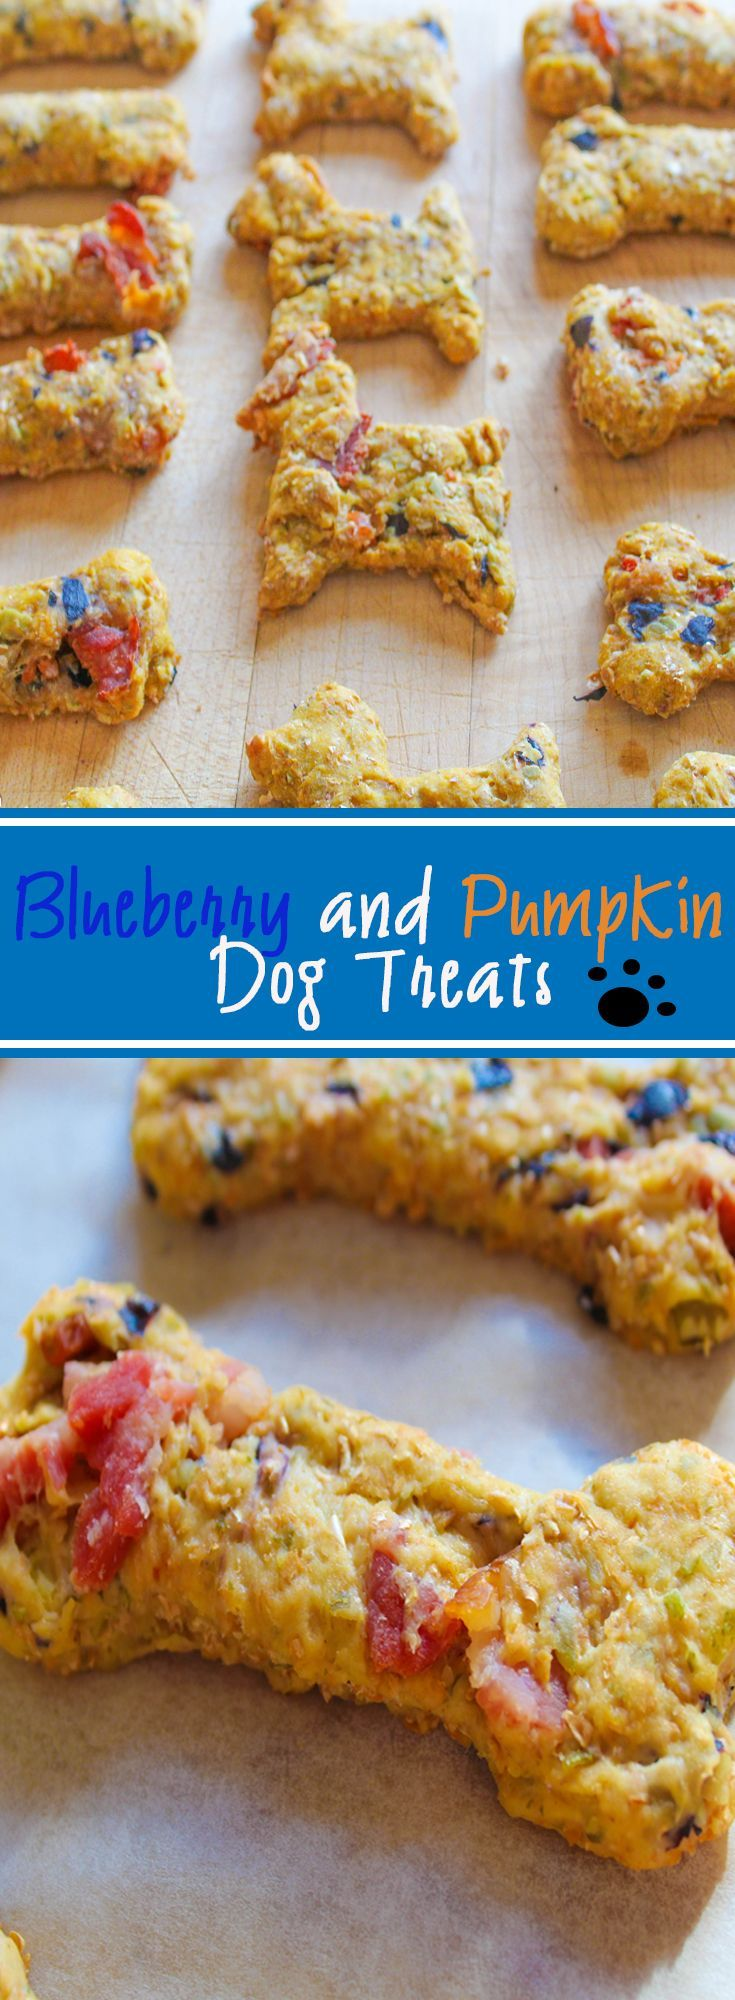 Delectable homemade pumpkin and blueberry doggy treats